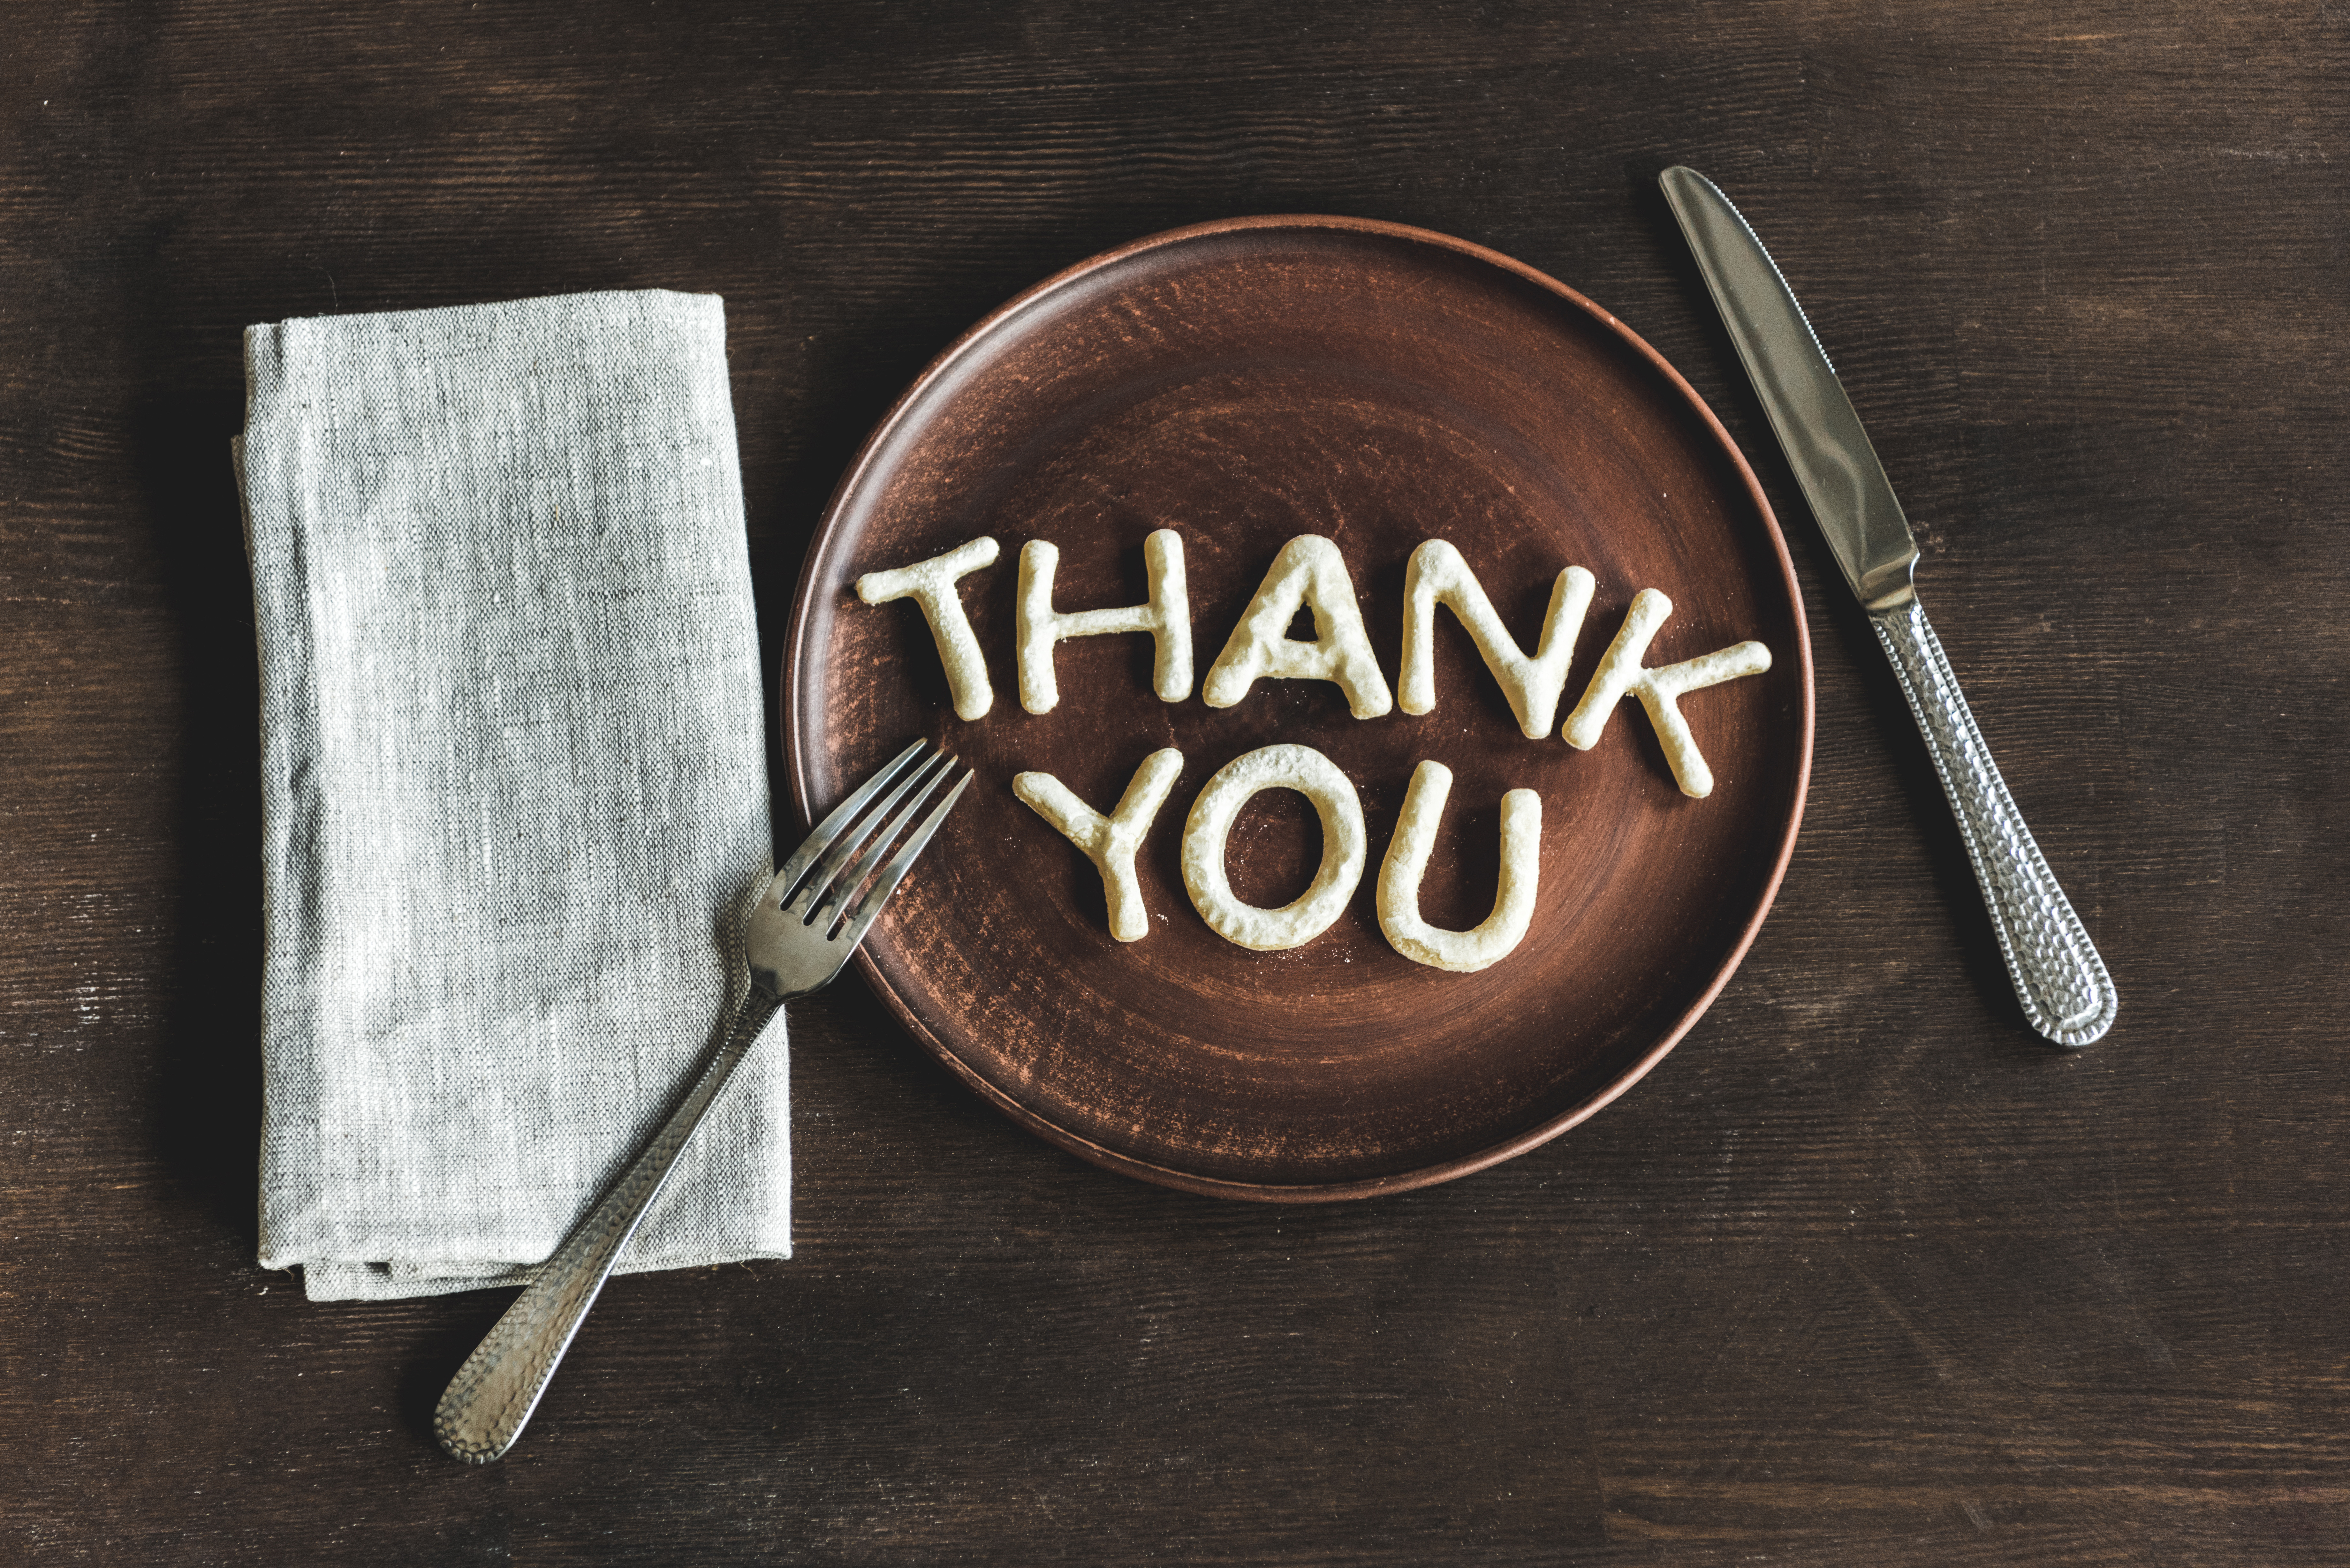 Thank you on plate with knife and fork